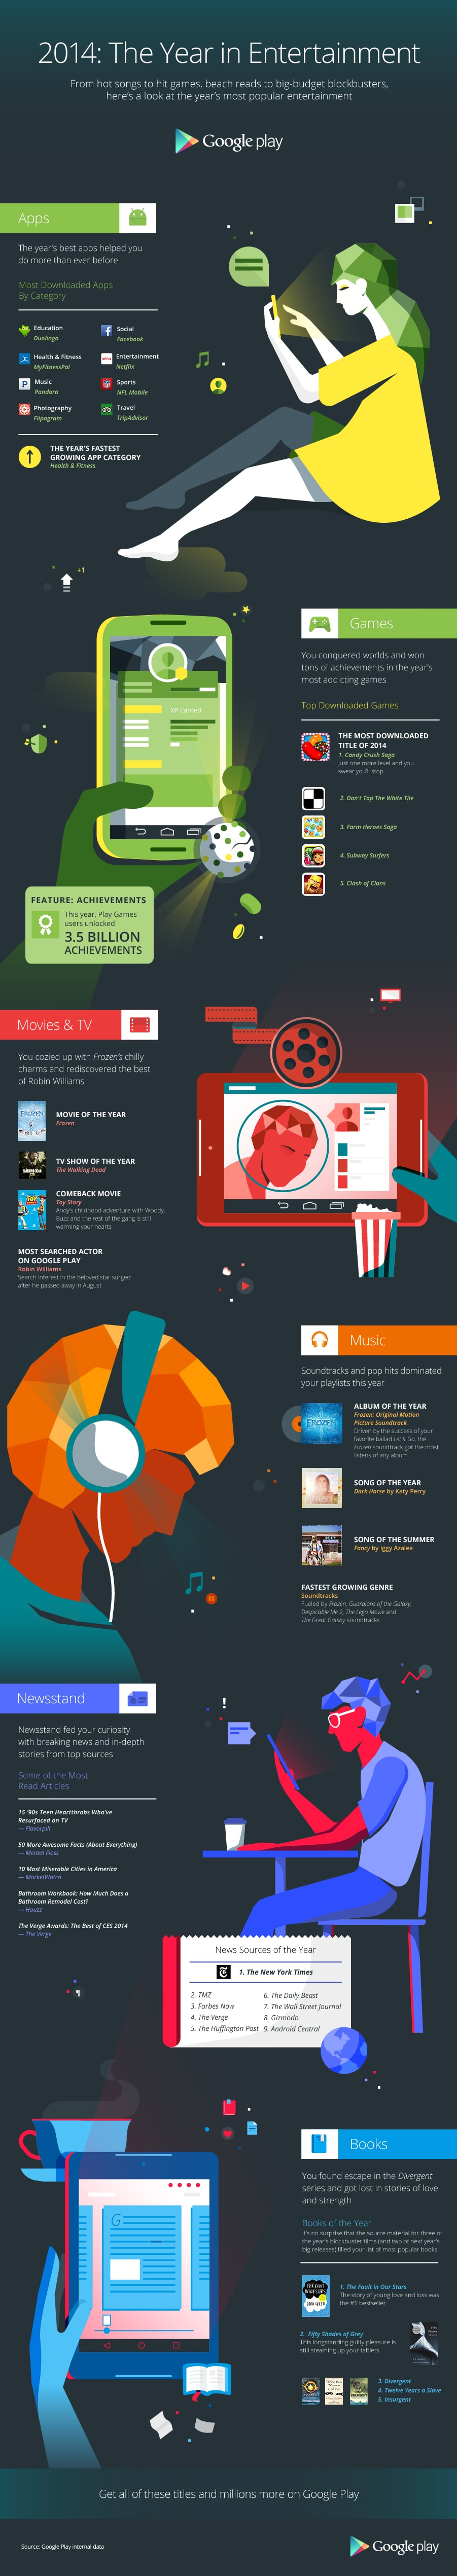 Fifty Shades of Grey, The Fault in Our Stars Top Google Play